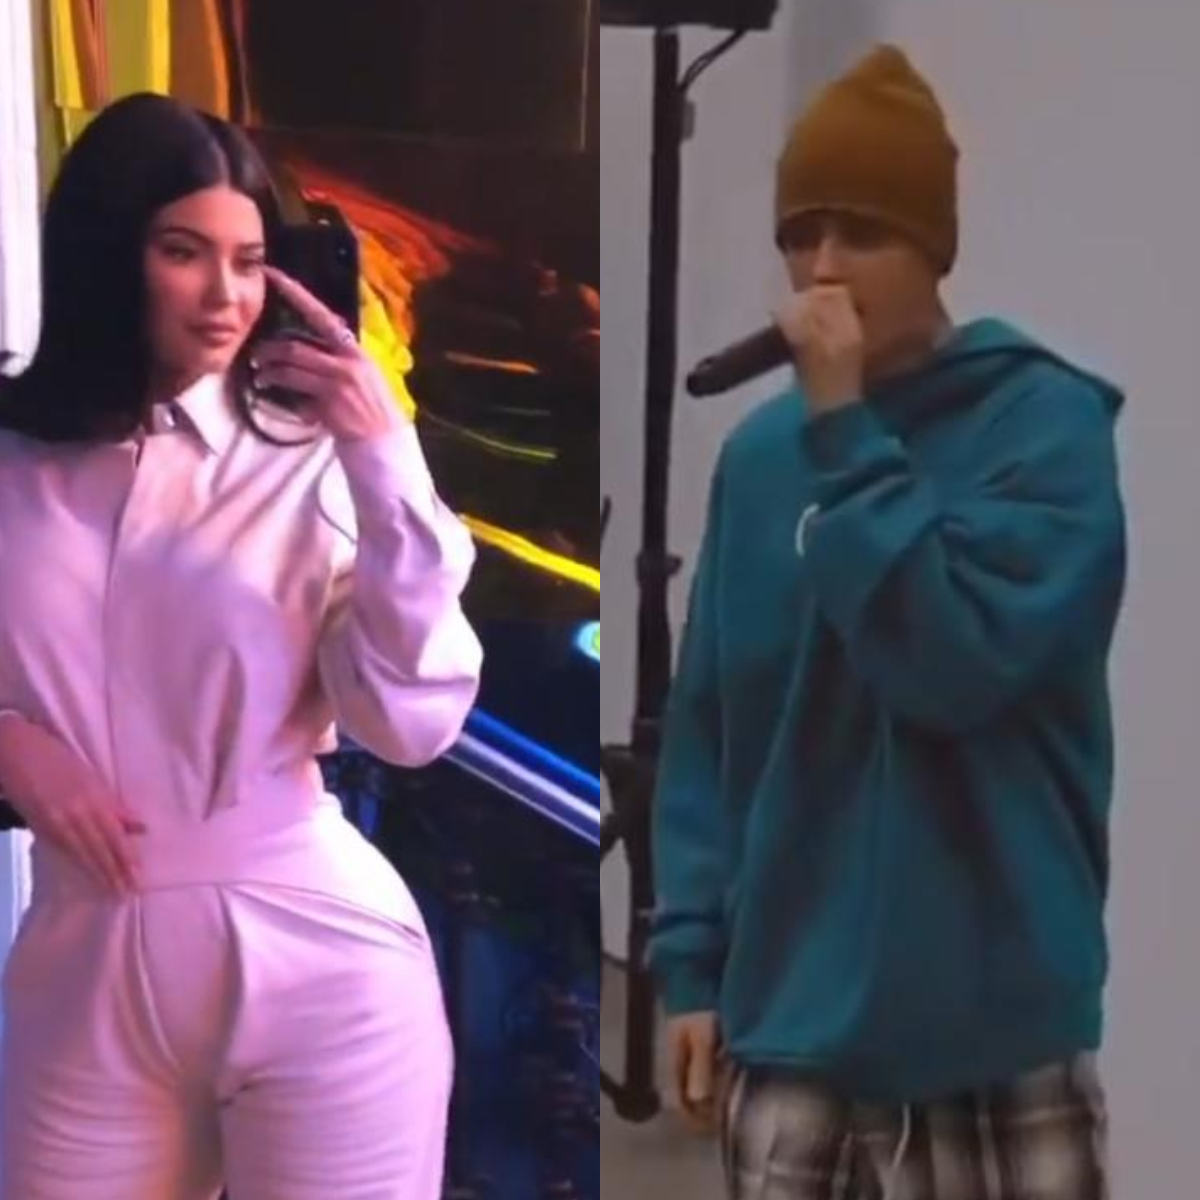 Kylie Jenner attends Justin Bieber's charity art auction and performs her famous 'Rise & Shine' tune